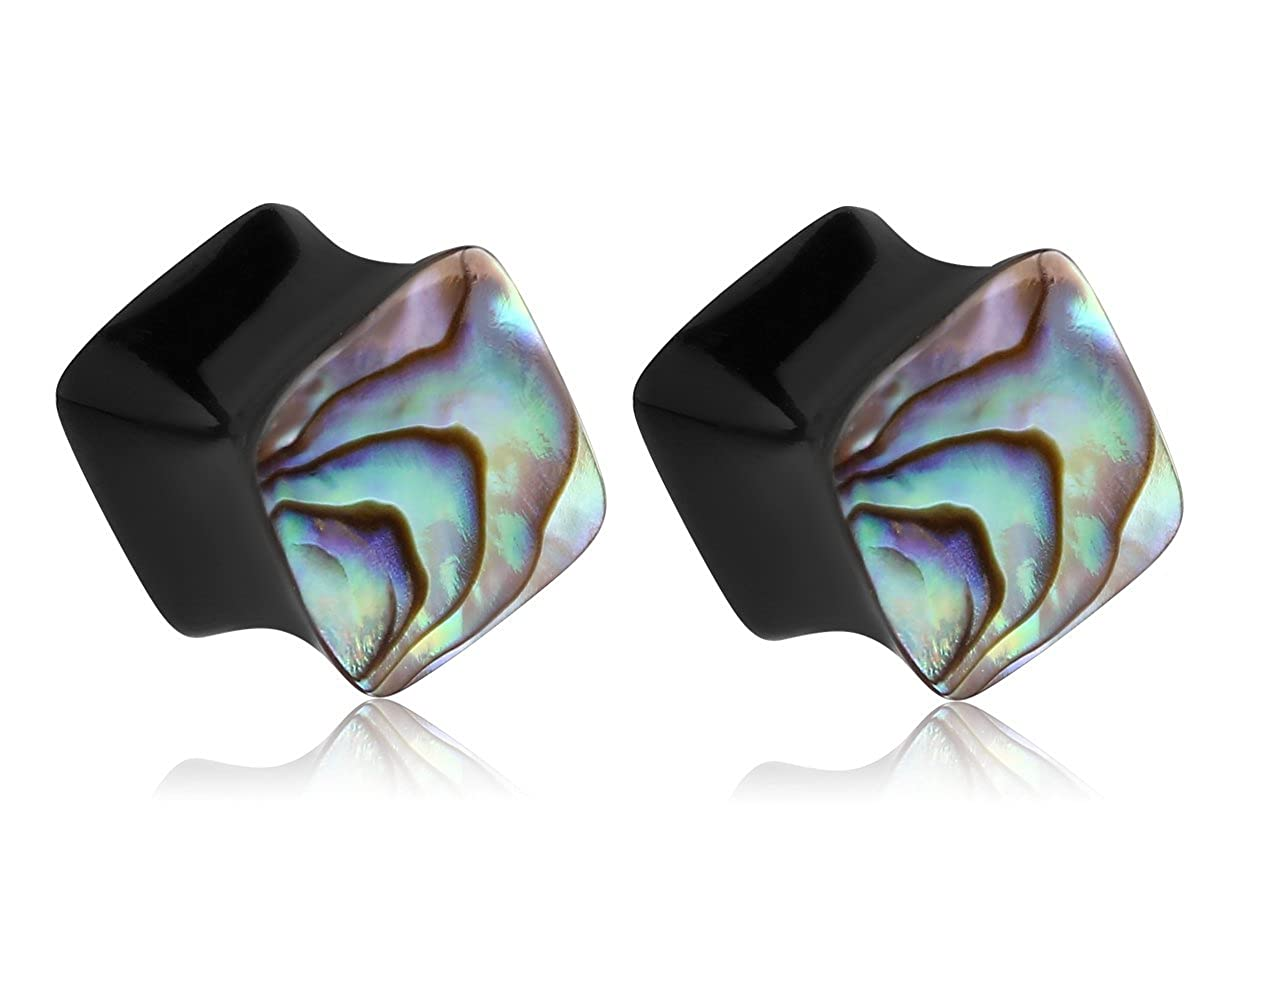 Holy Plug Body Piercing Jewelry Pair of 2 Horn Double Flared Square Plug With Paua Shell Inlay 000g 0000g 9//16 5//8 6g 2g 0g